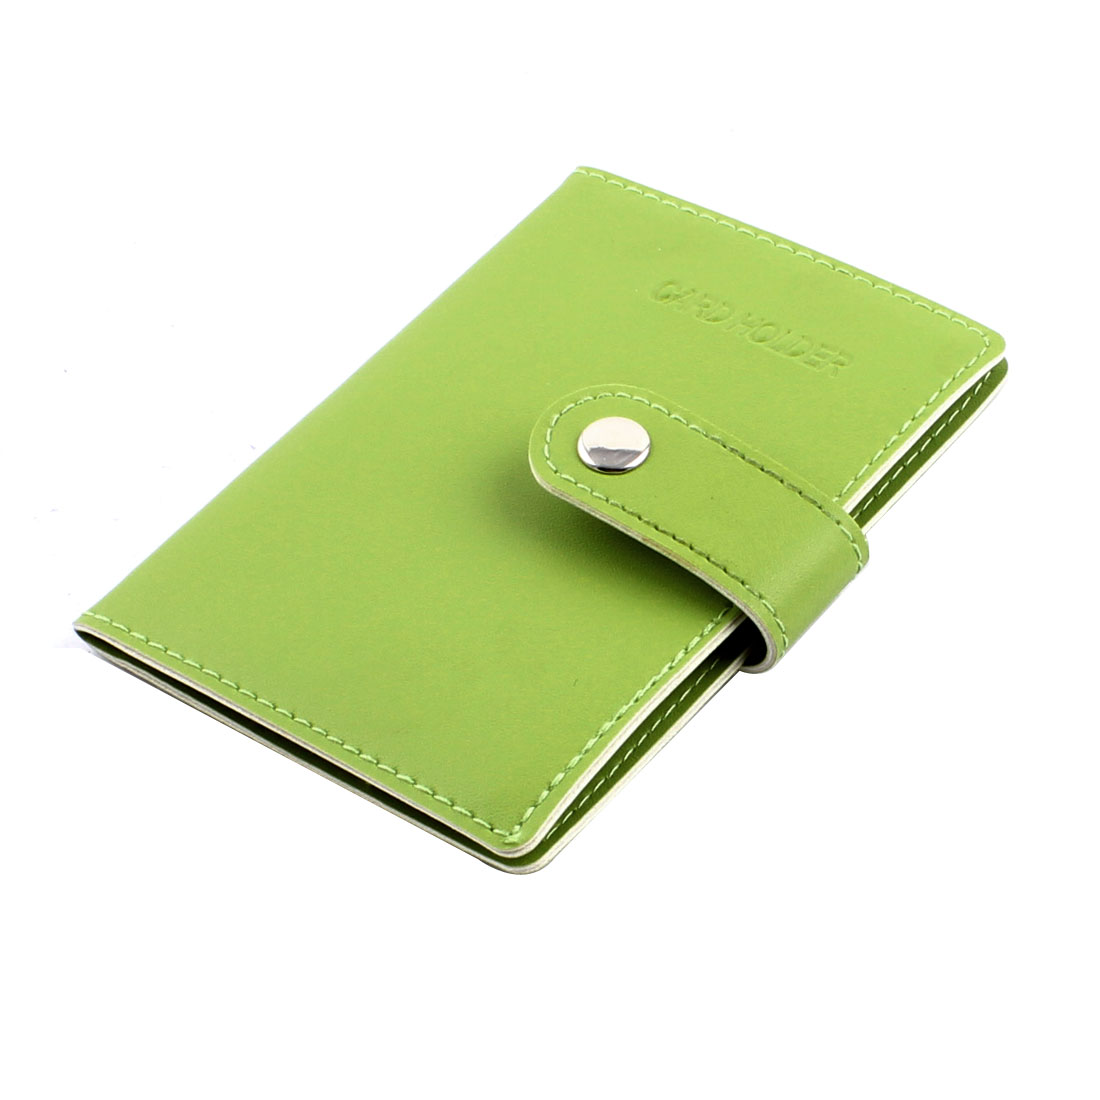 Faux Leather Single Press Stud Button 20 Sheets ID Bank VIP Post Card Holder Green